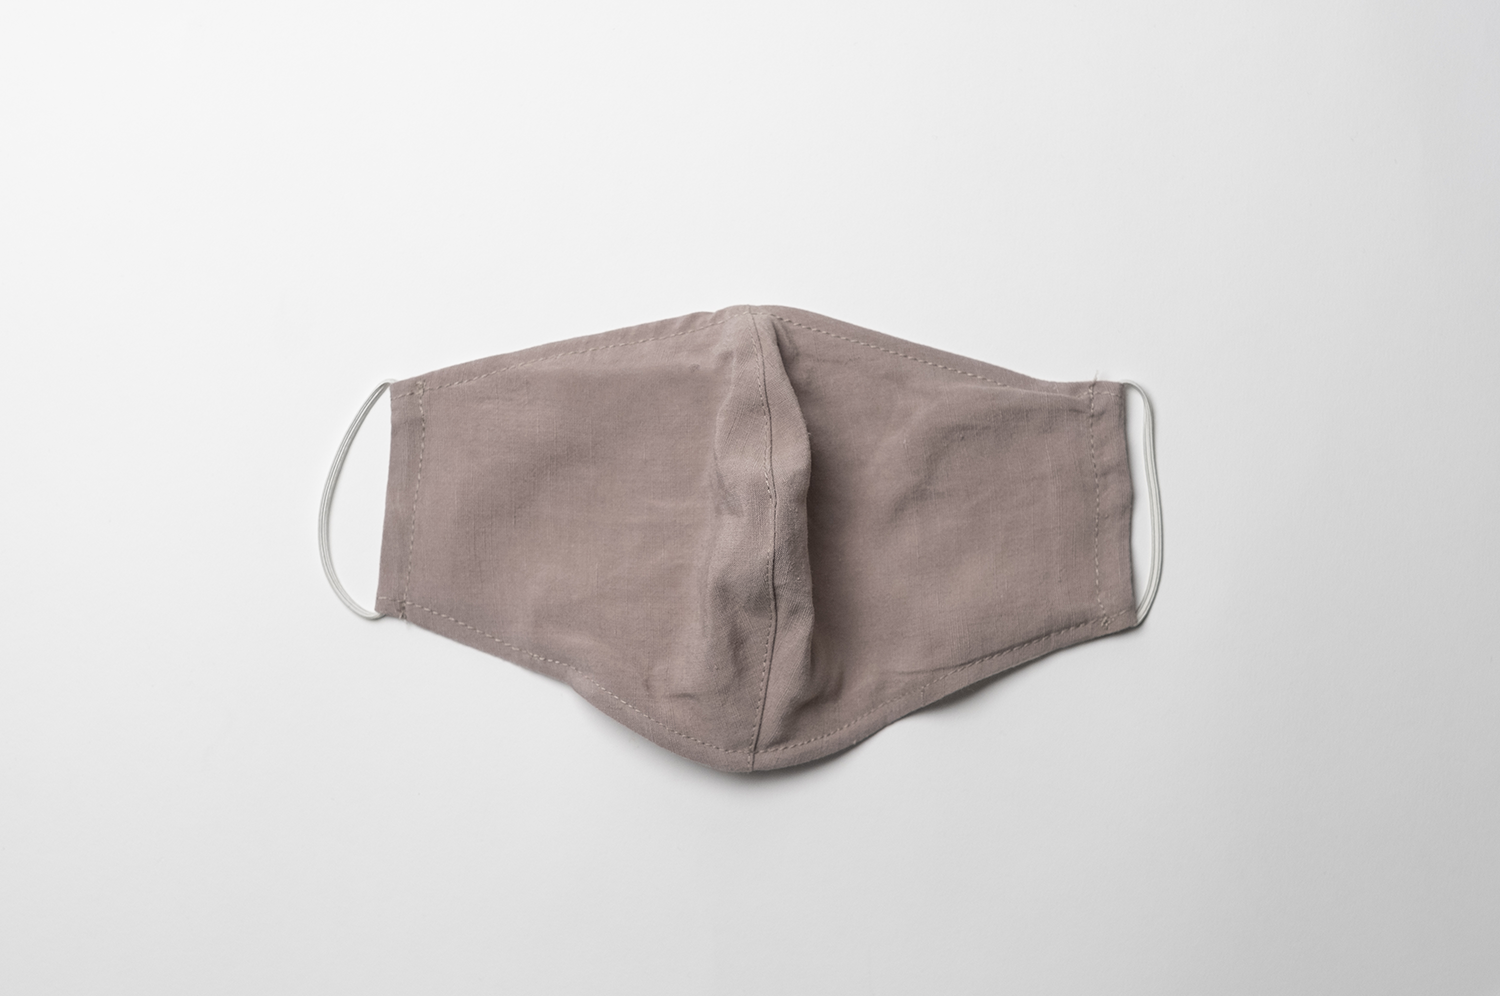 Reusable Eco Friendly Face Cover - Taupe Linen